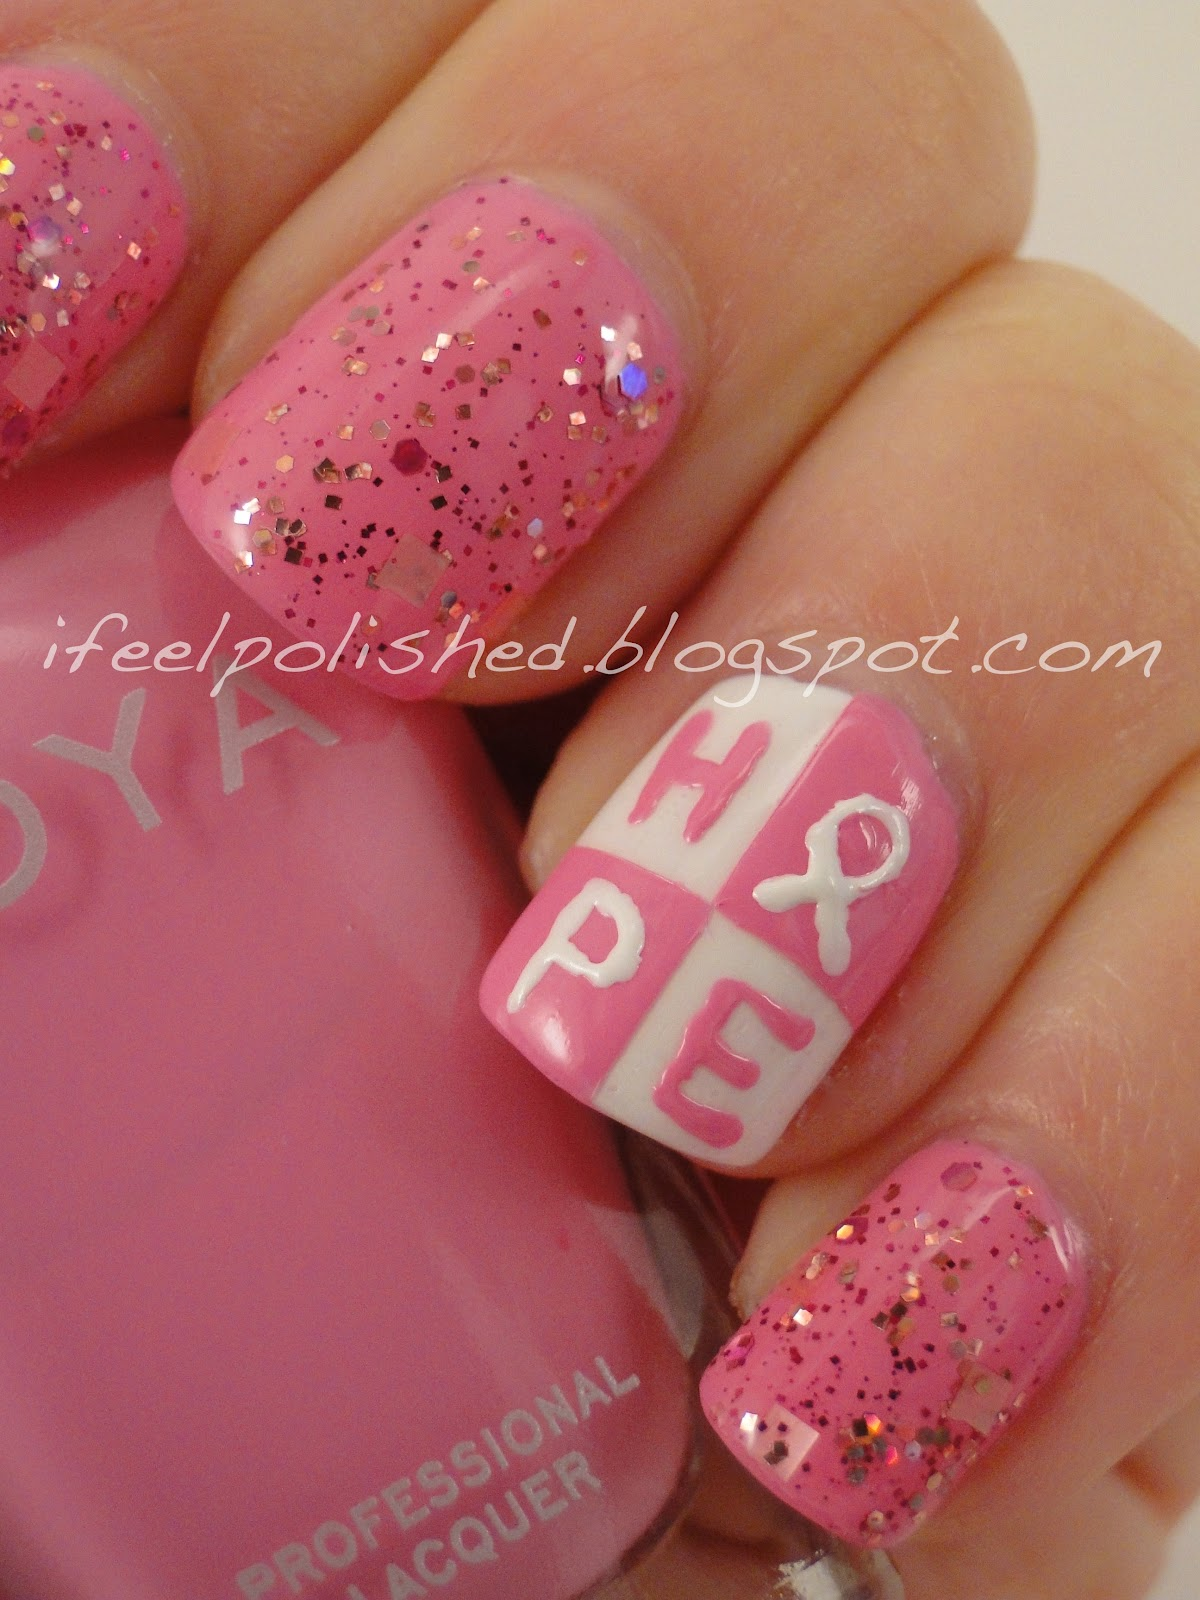 Feel Polished!: Breast Cancer Awareness Nails: Take Two